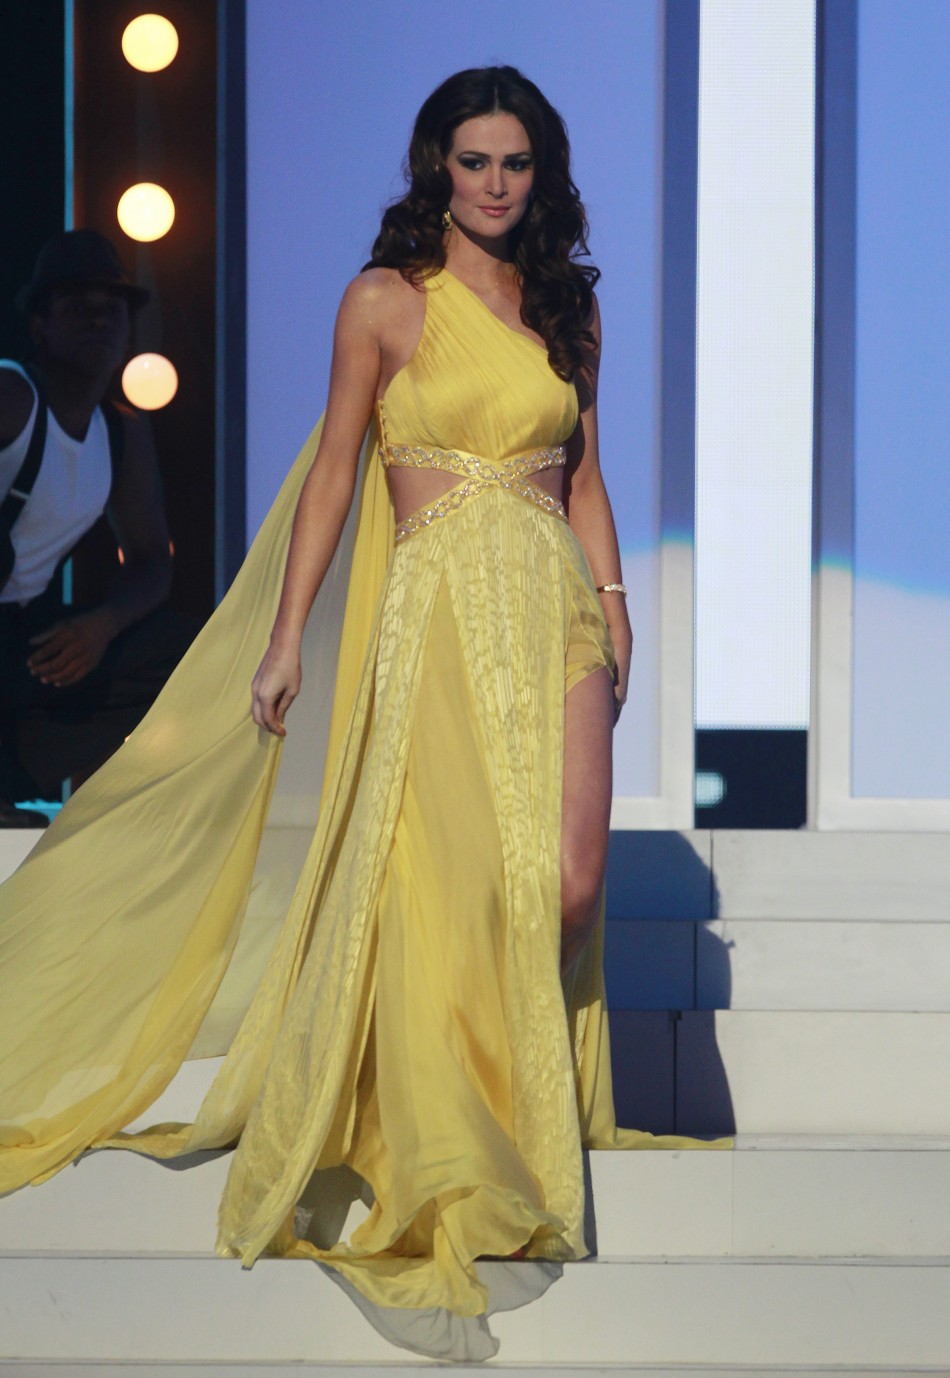 Miss Brazil Priscila Machado participates in the evening gown segment of the Miss Universe 2011 pageant in Sao Paulo